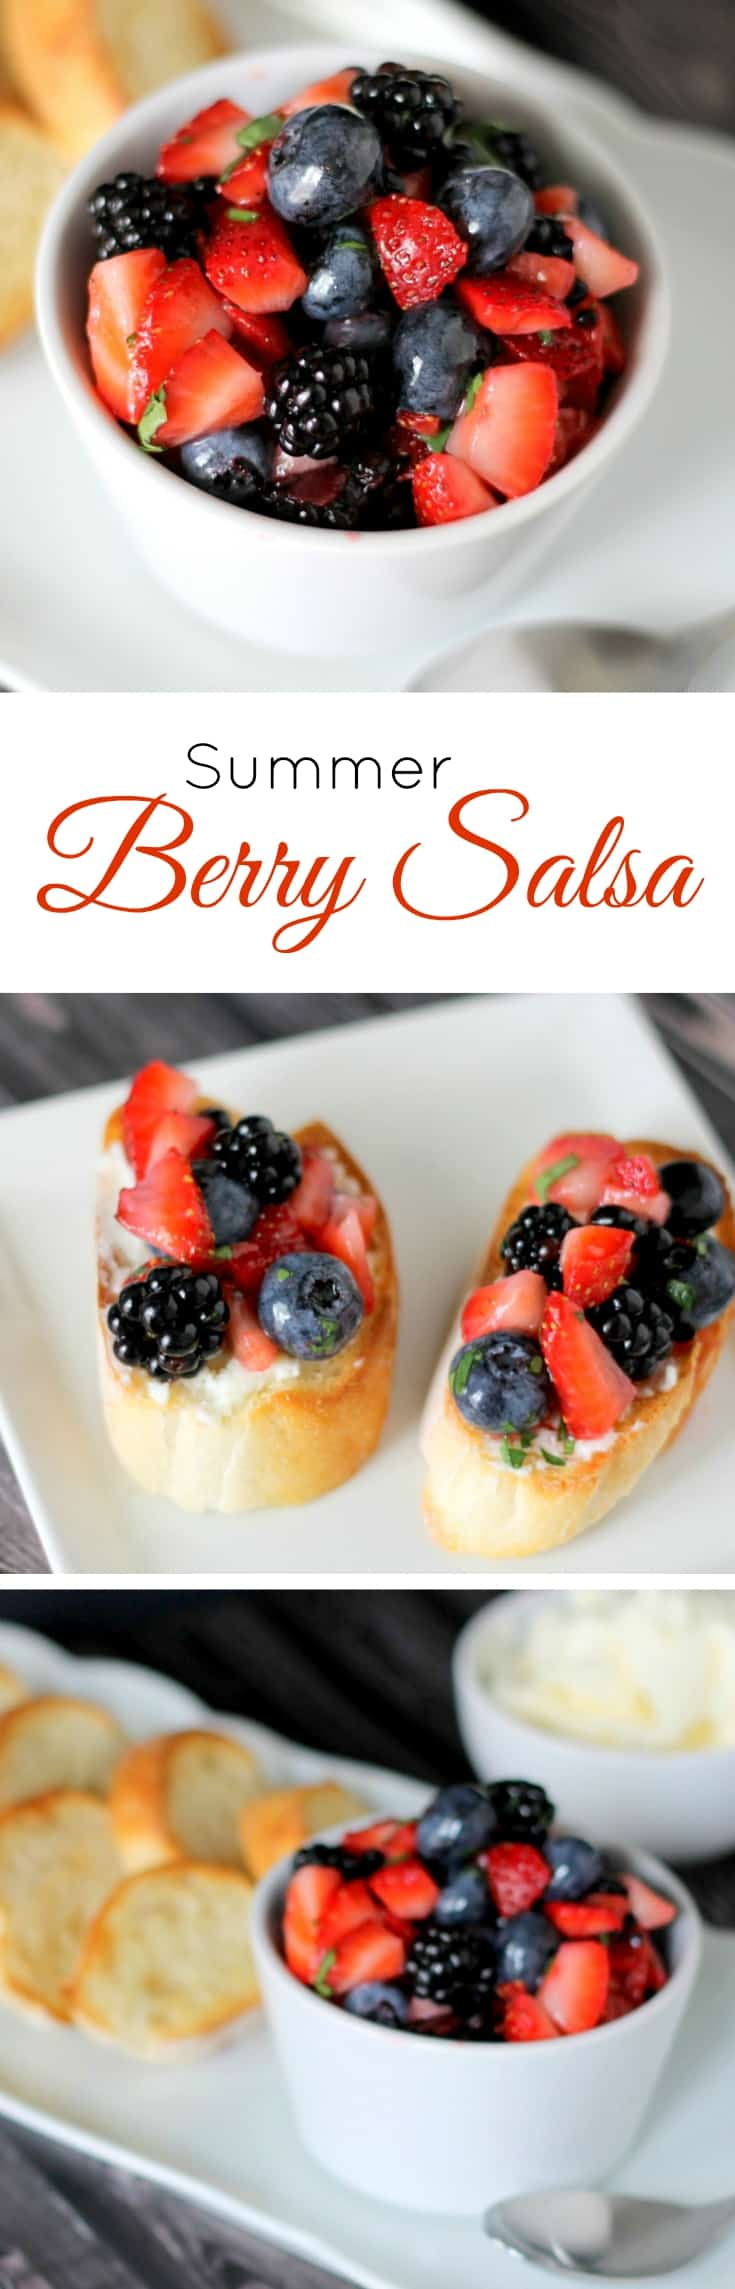 summer berry salsa recipe easy